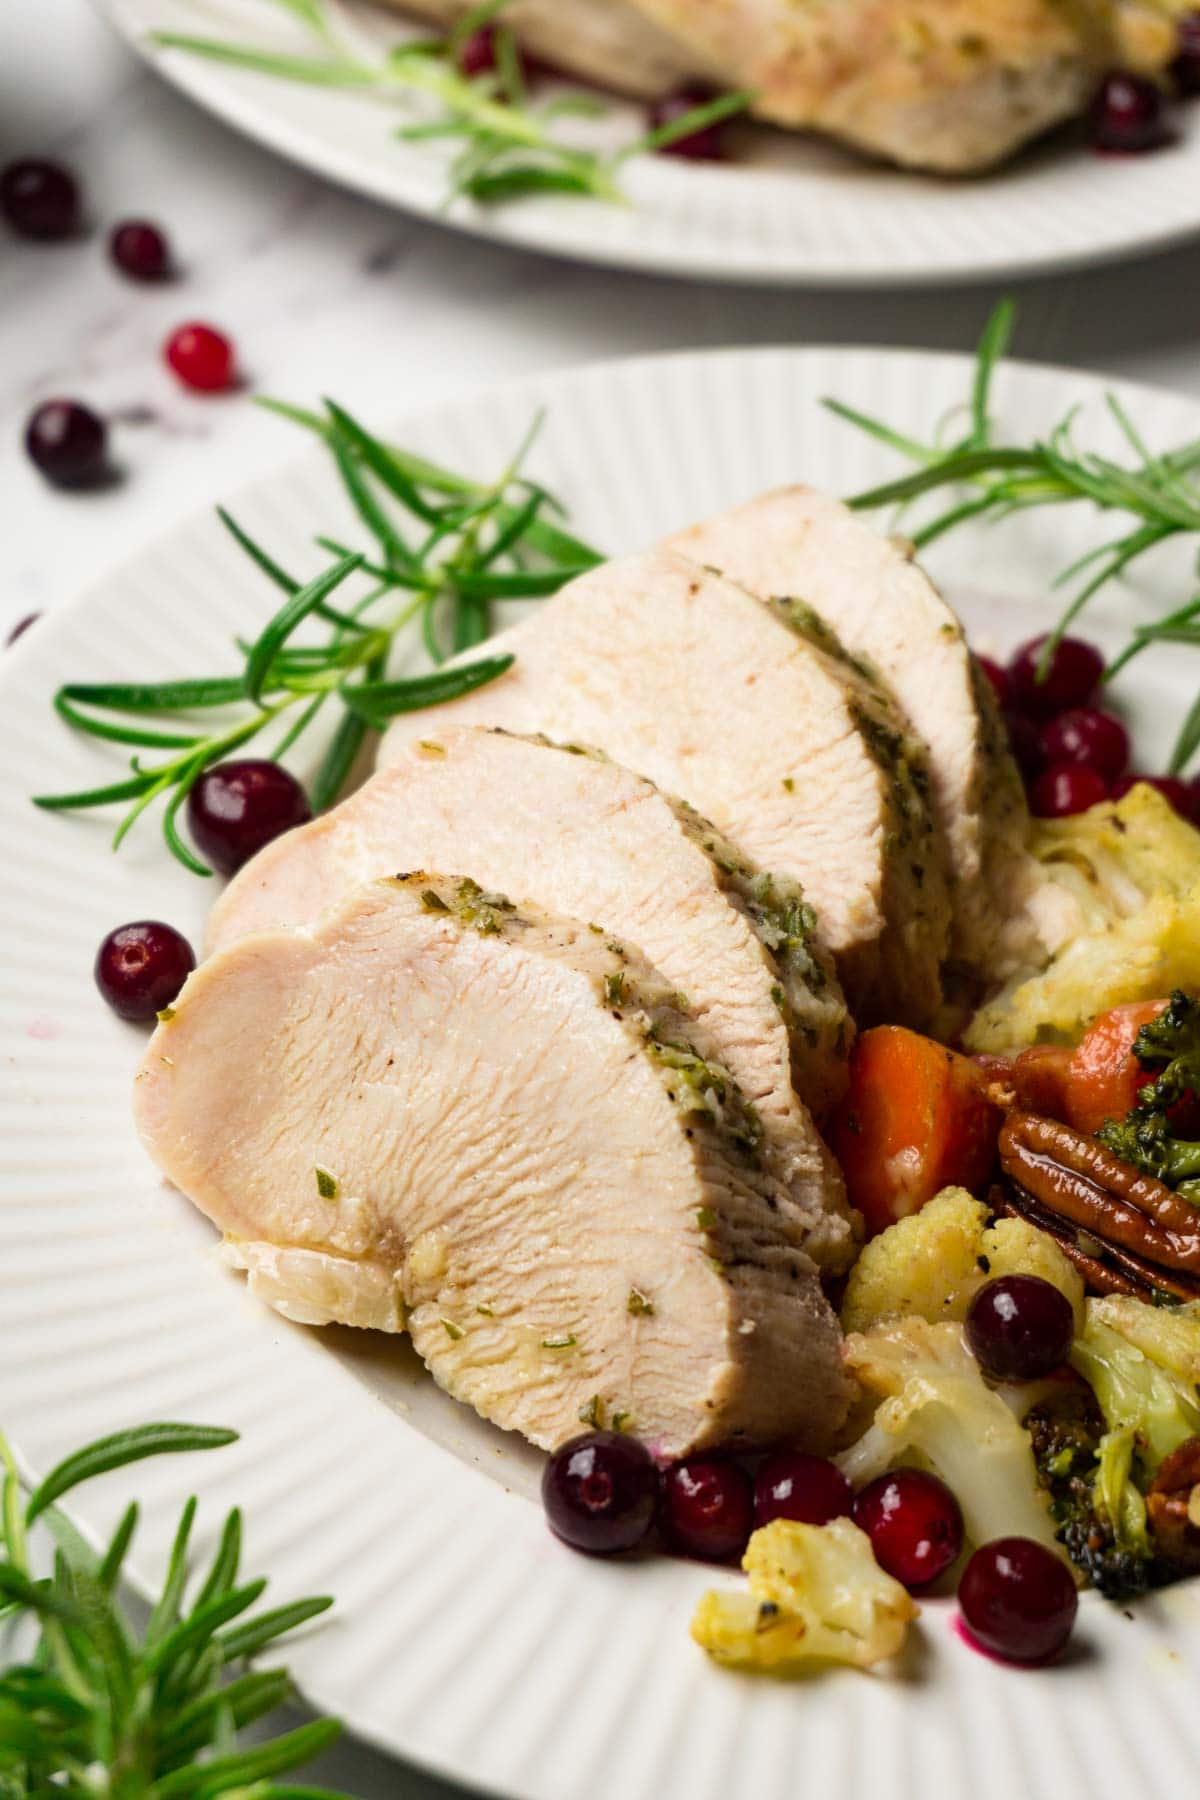 A plate with sliced brined turkey breast and stuffing on the side.